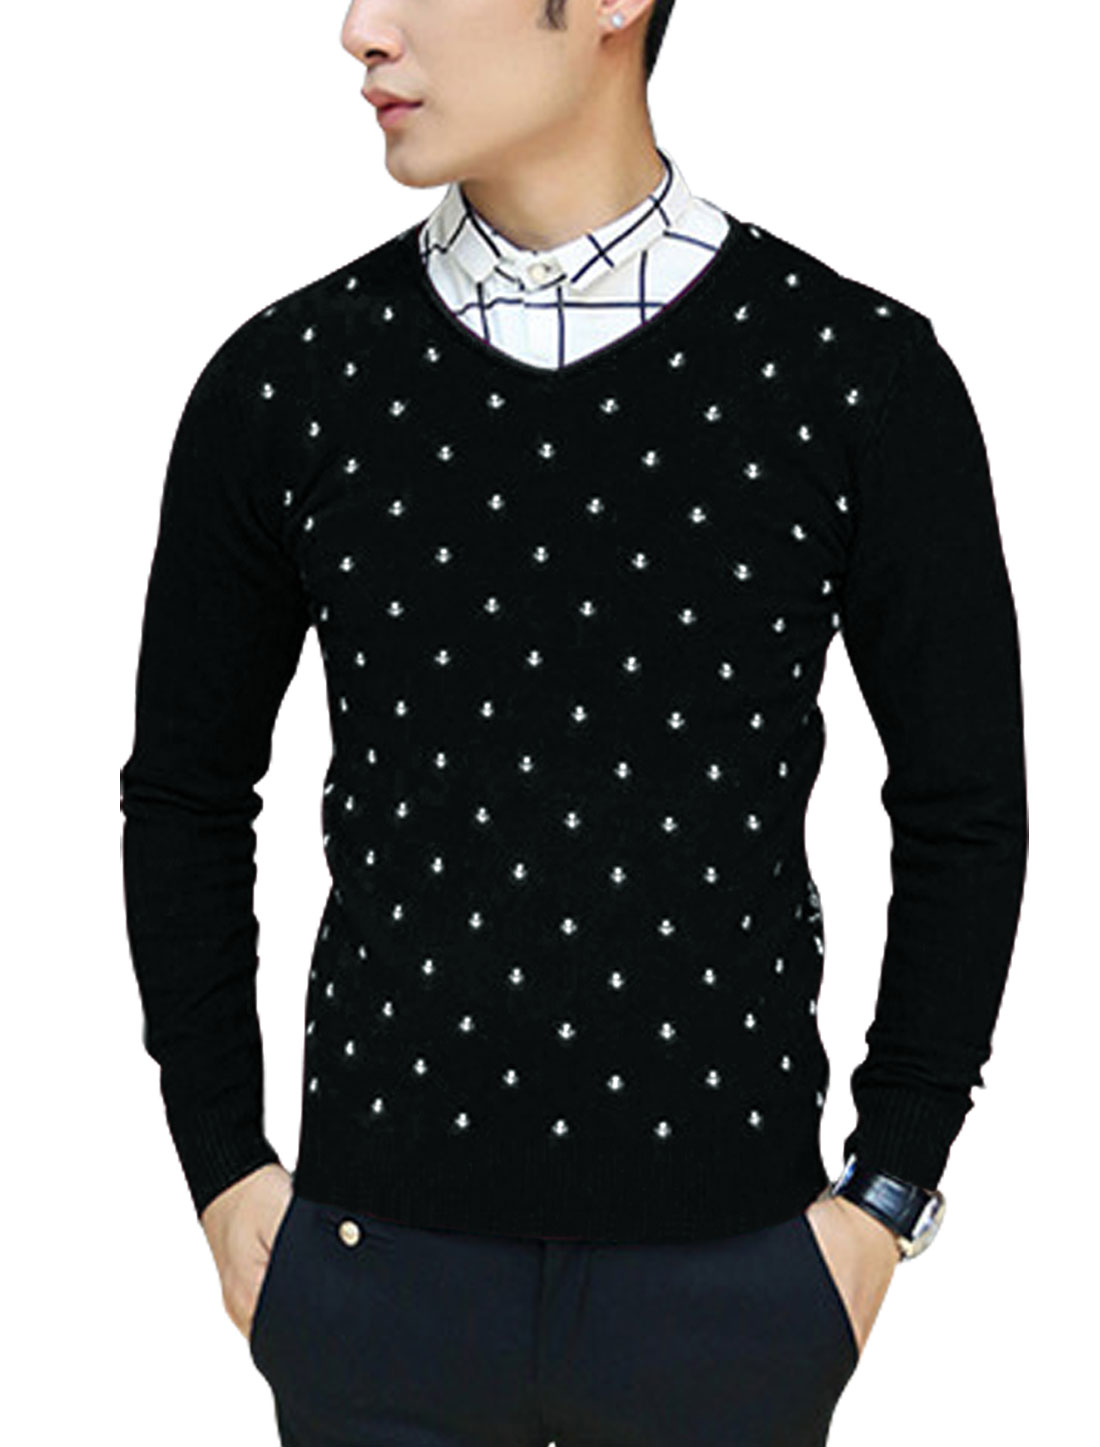 Men Slipover Anchor Pattern Ribbed Hem Leisure Slim Knit Shirt Black S